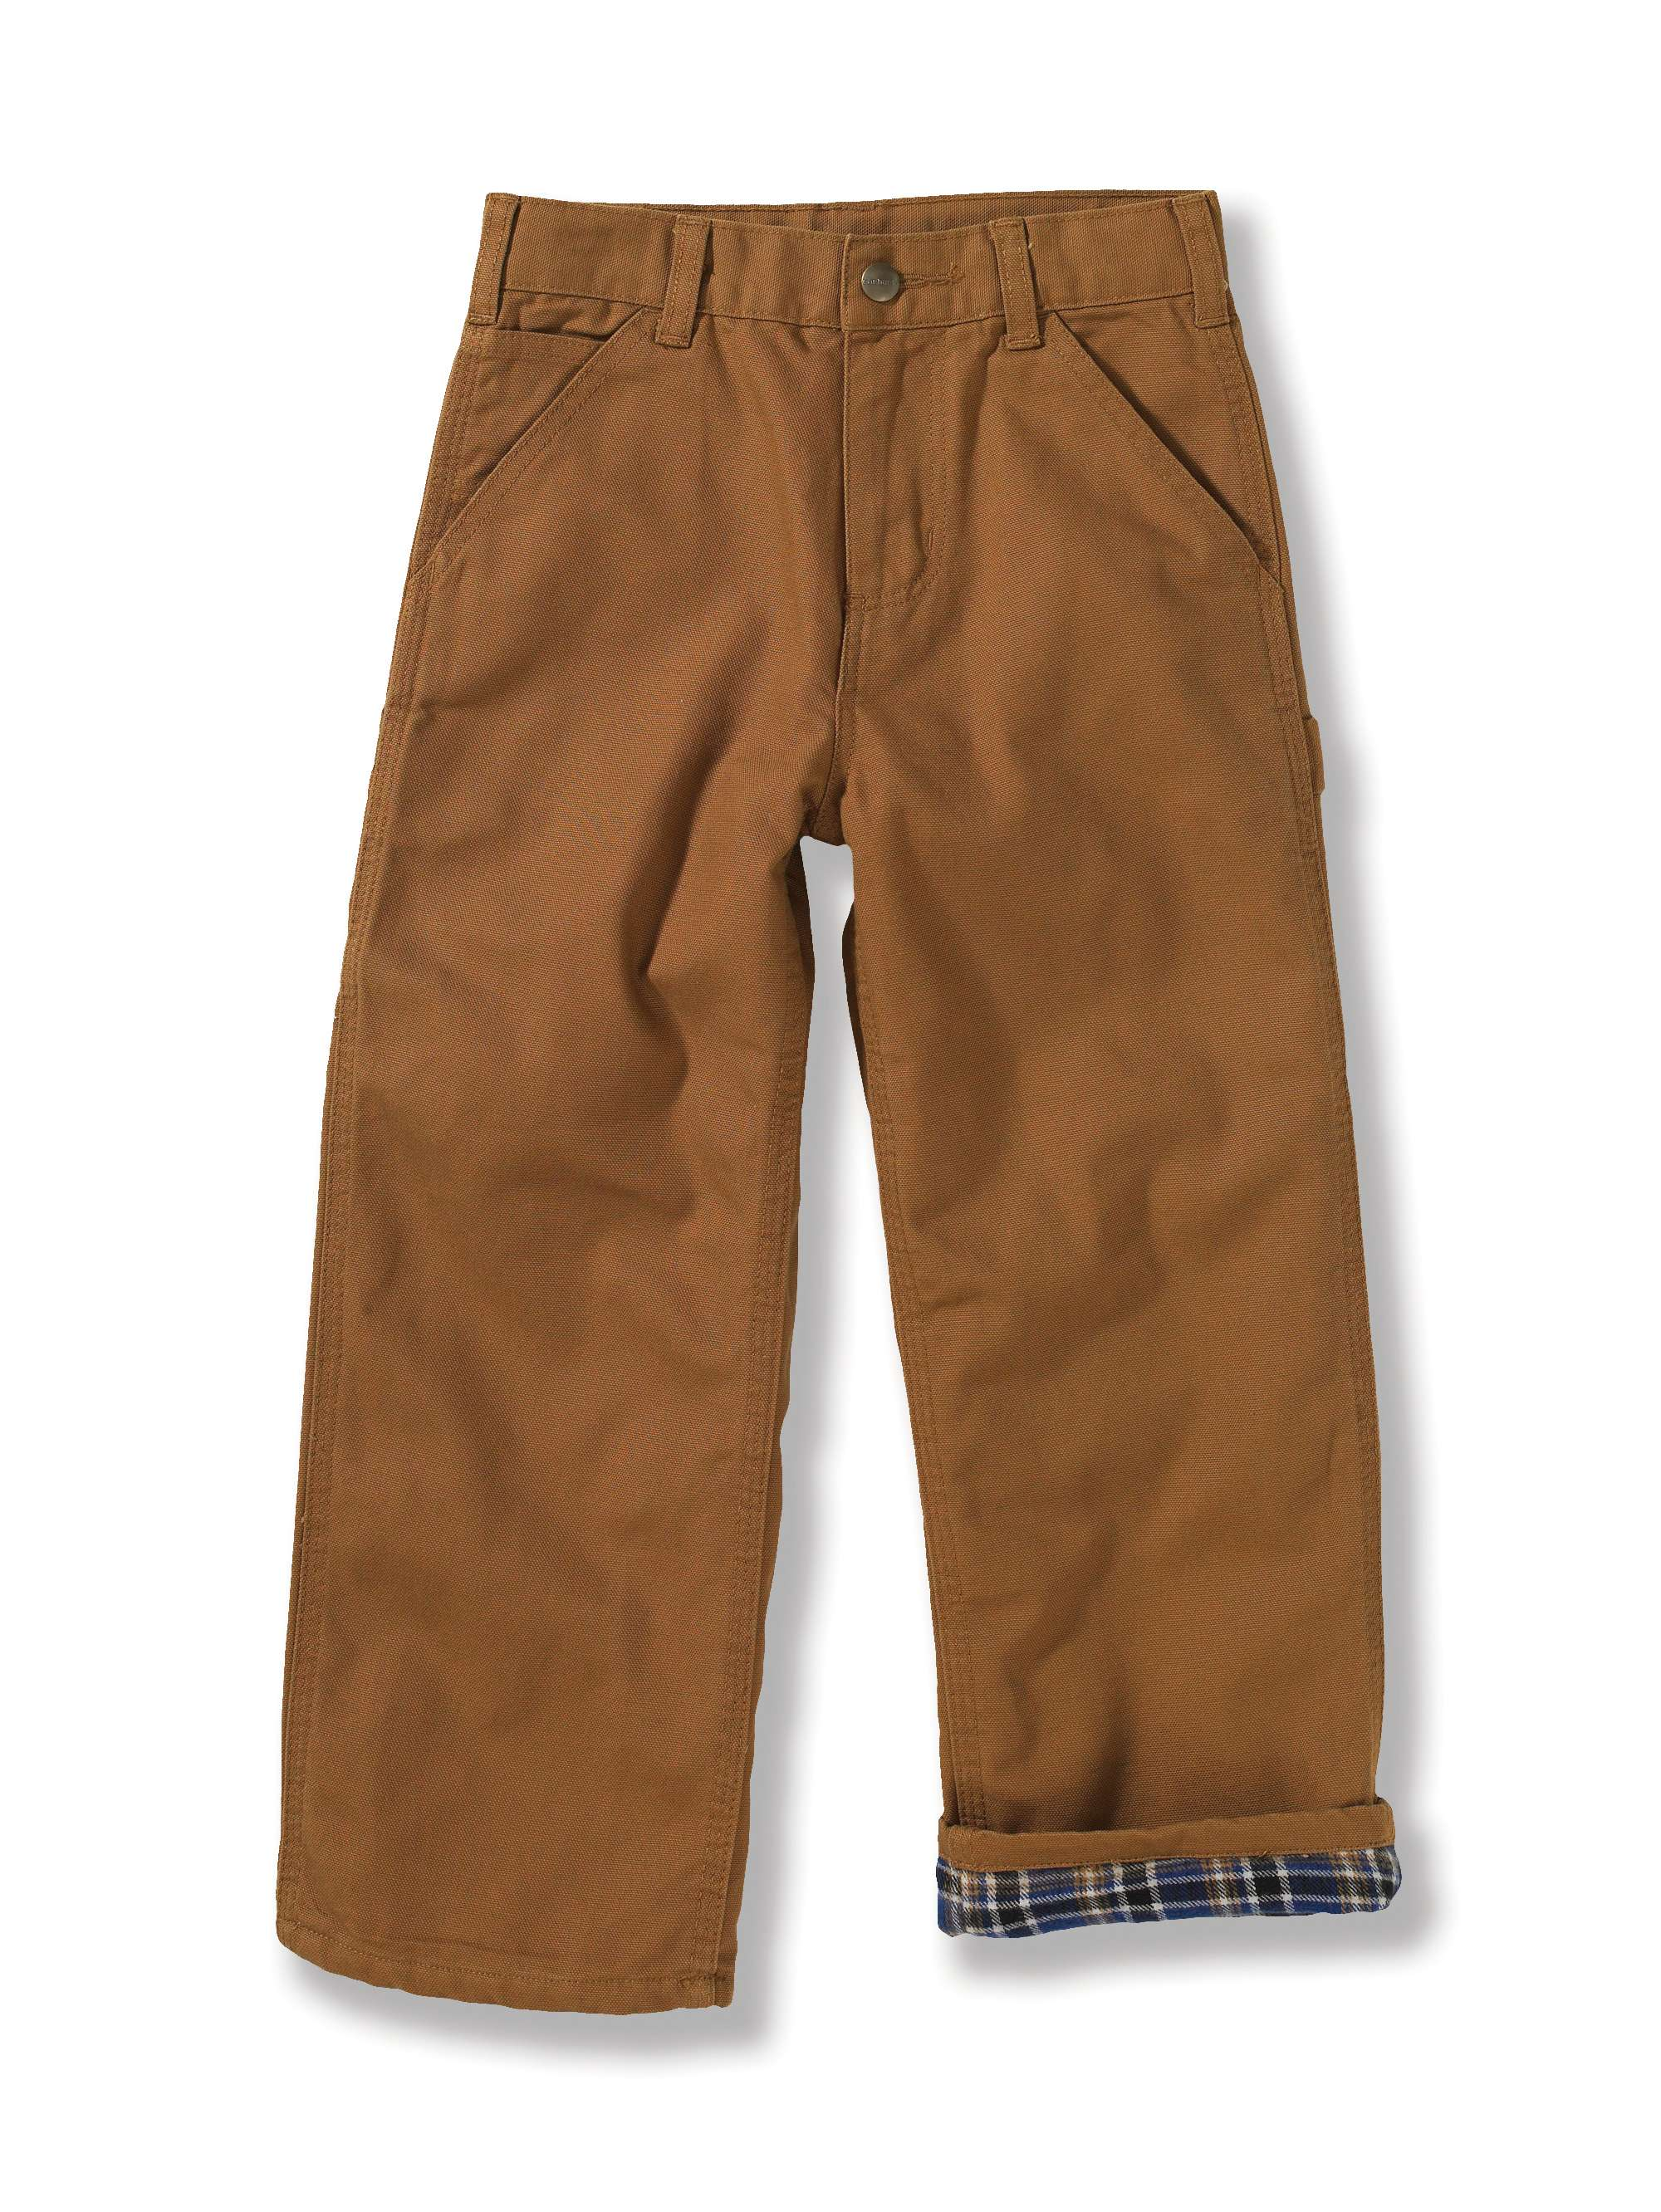 Carhartt Canvas Dungaree Flannel-Lined